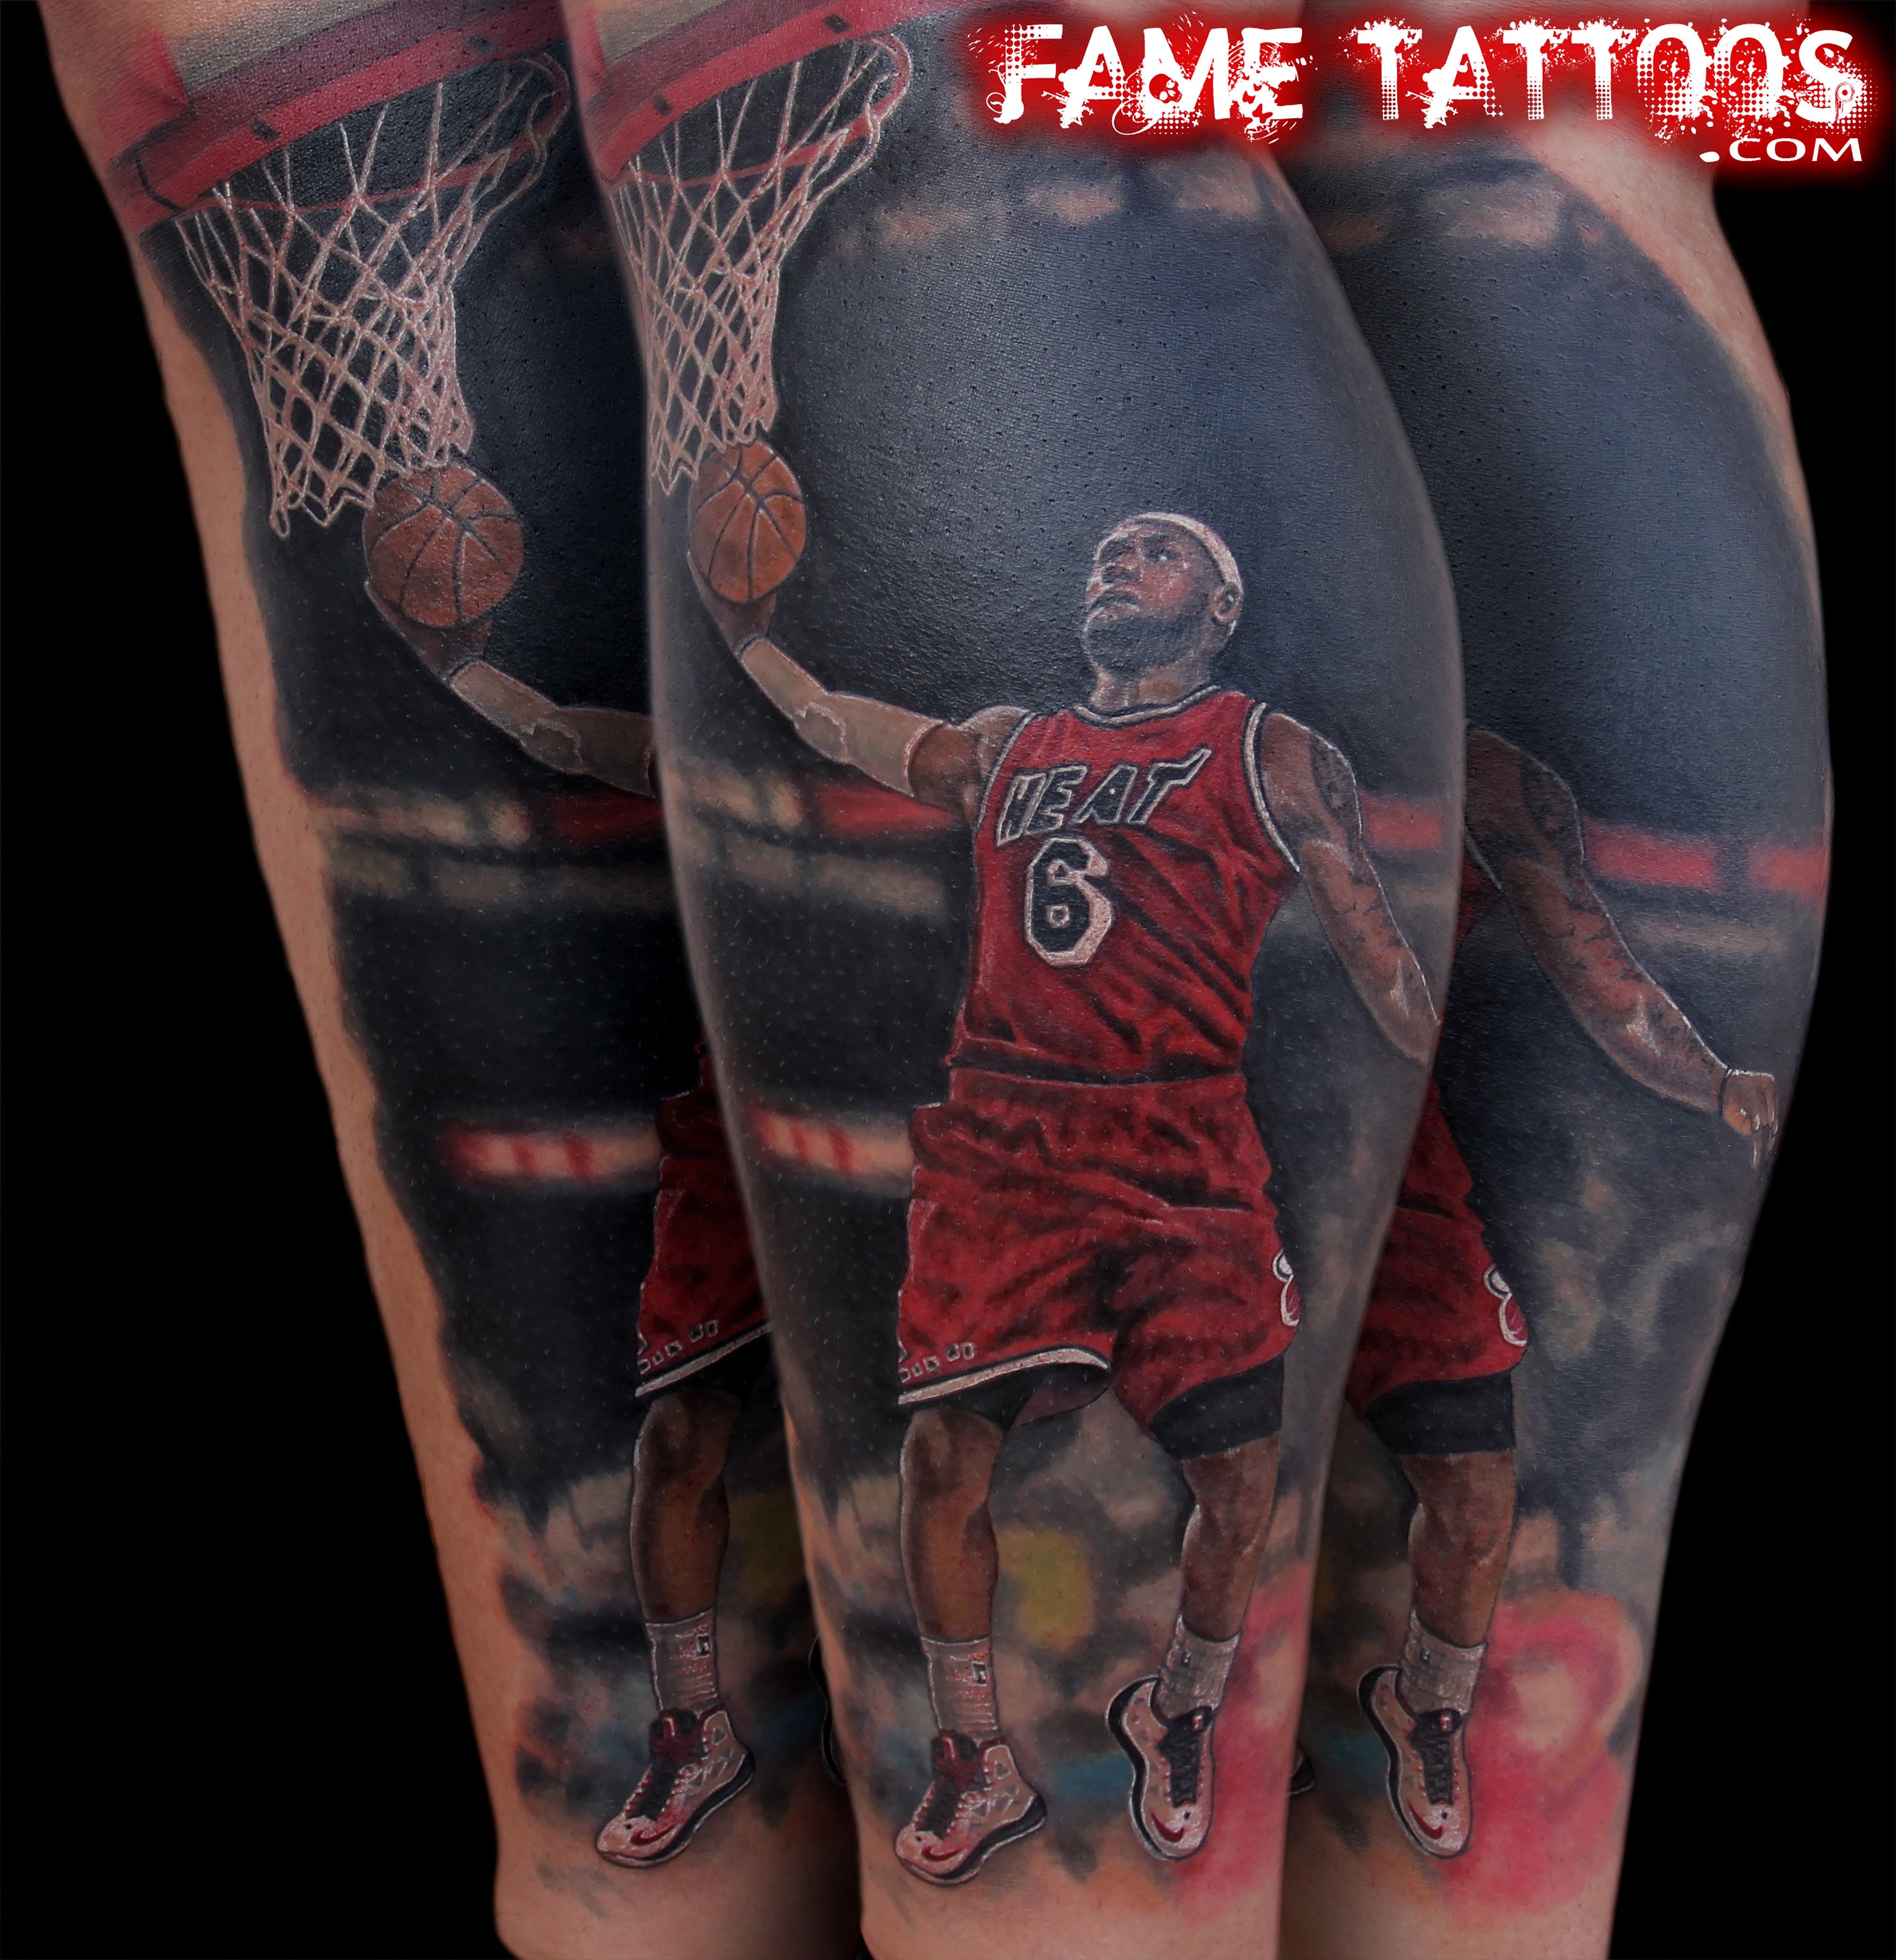 Fame tattoos miami 39 s best tattoo shop with the best for Tattoo shops in nyc